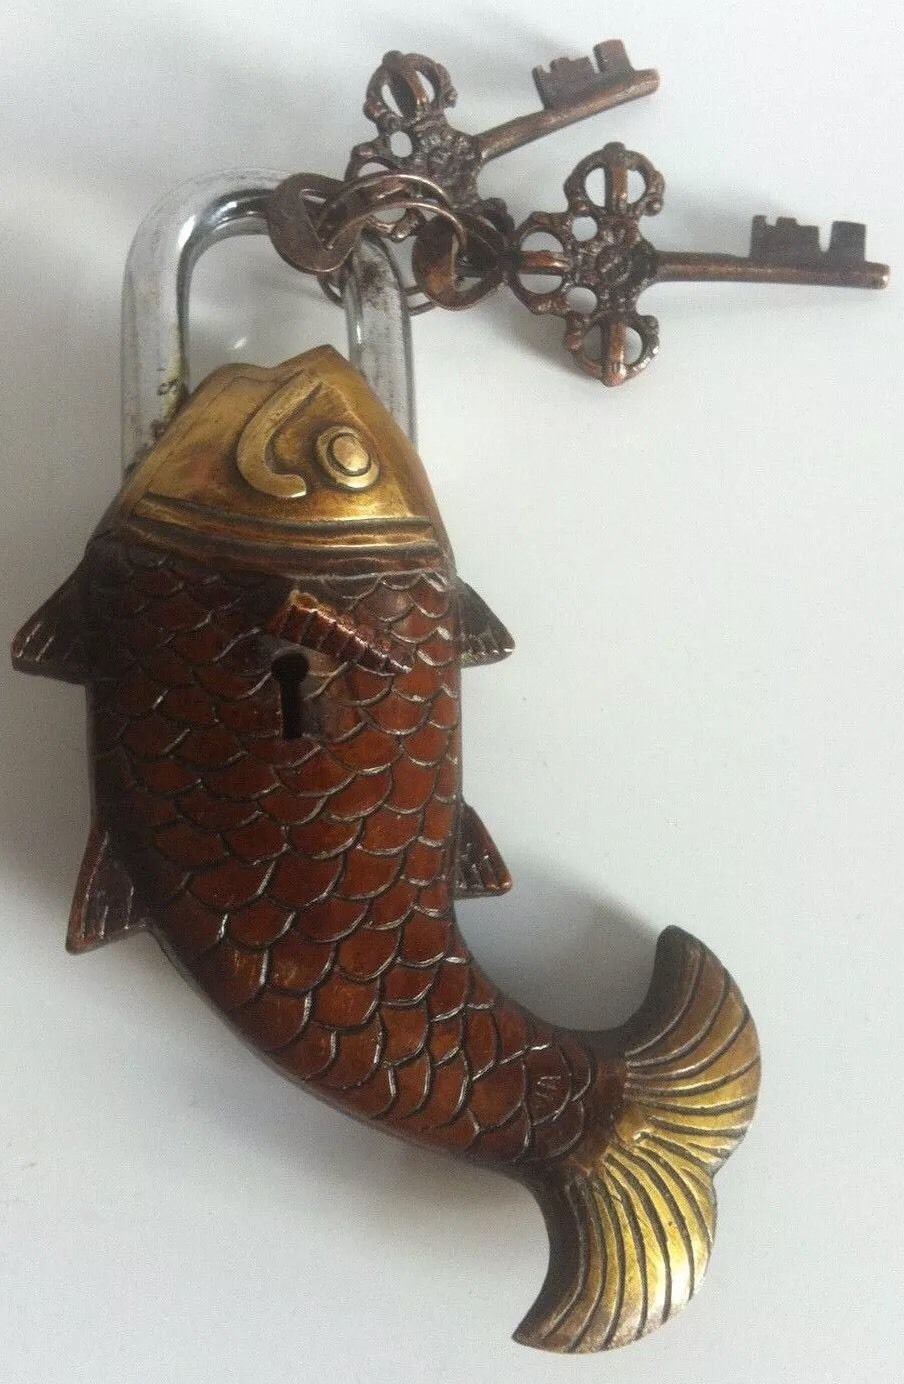 Chinese bronze ancient lock golden fish shape with key furniture old collectible